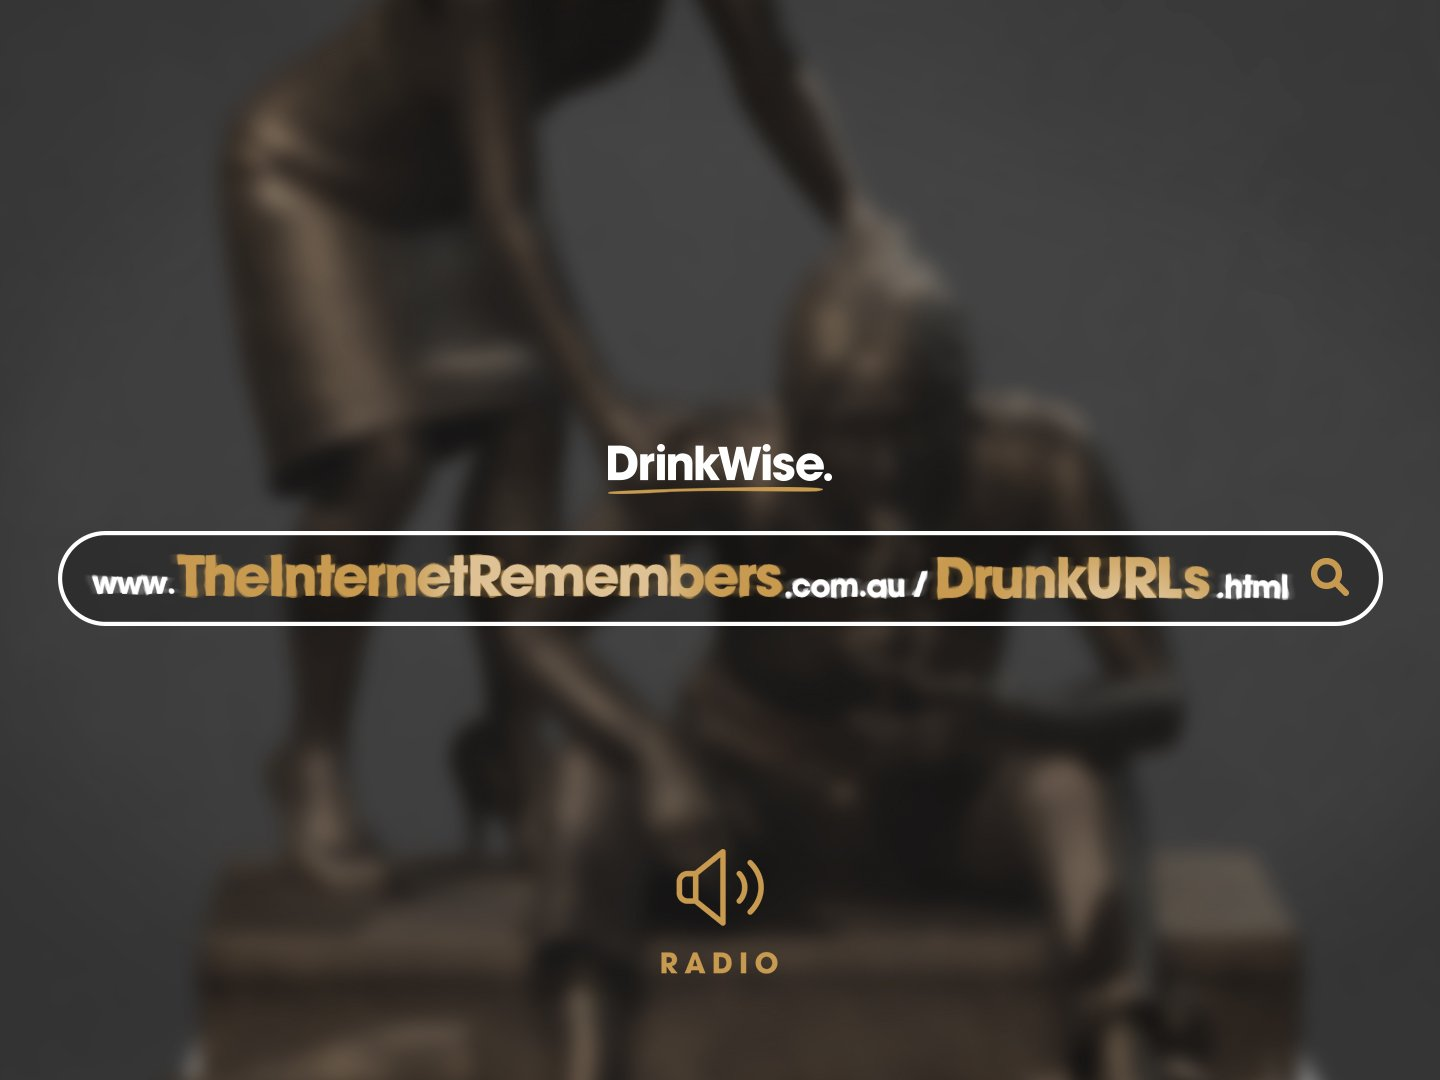 DrinkWise | The Internet Remembers Thumbnail